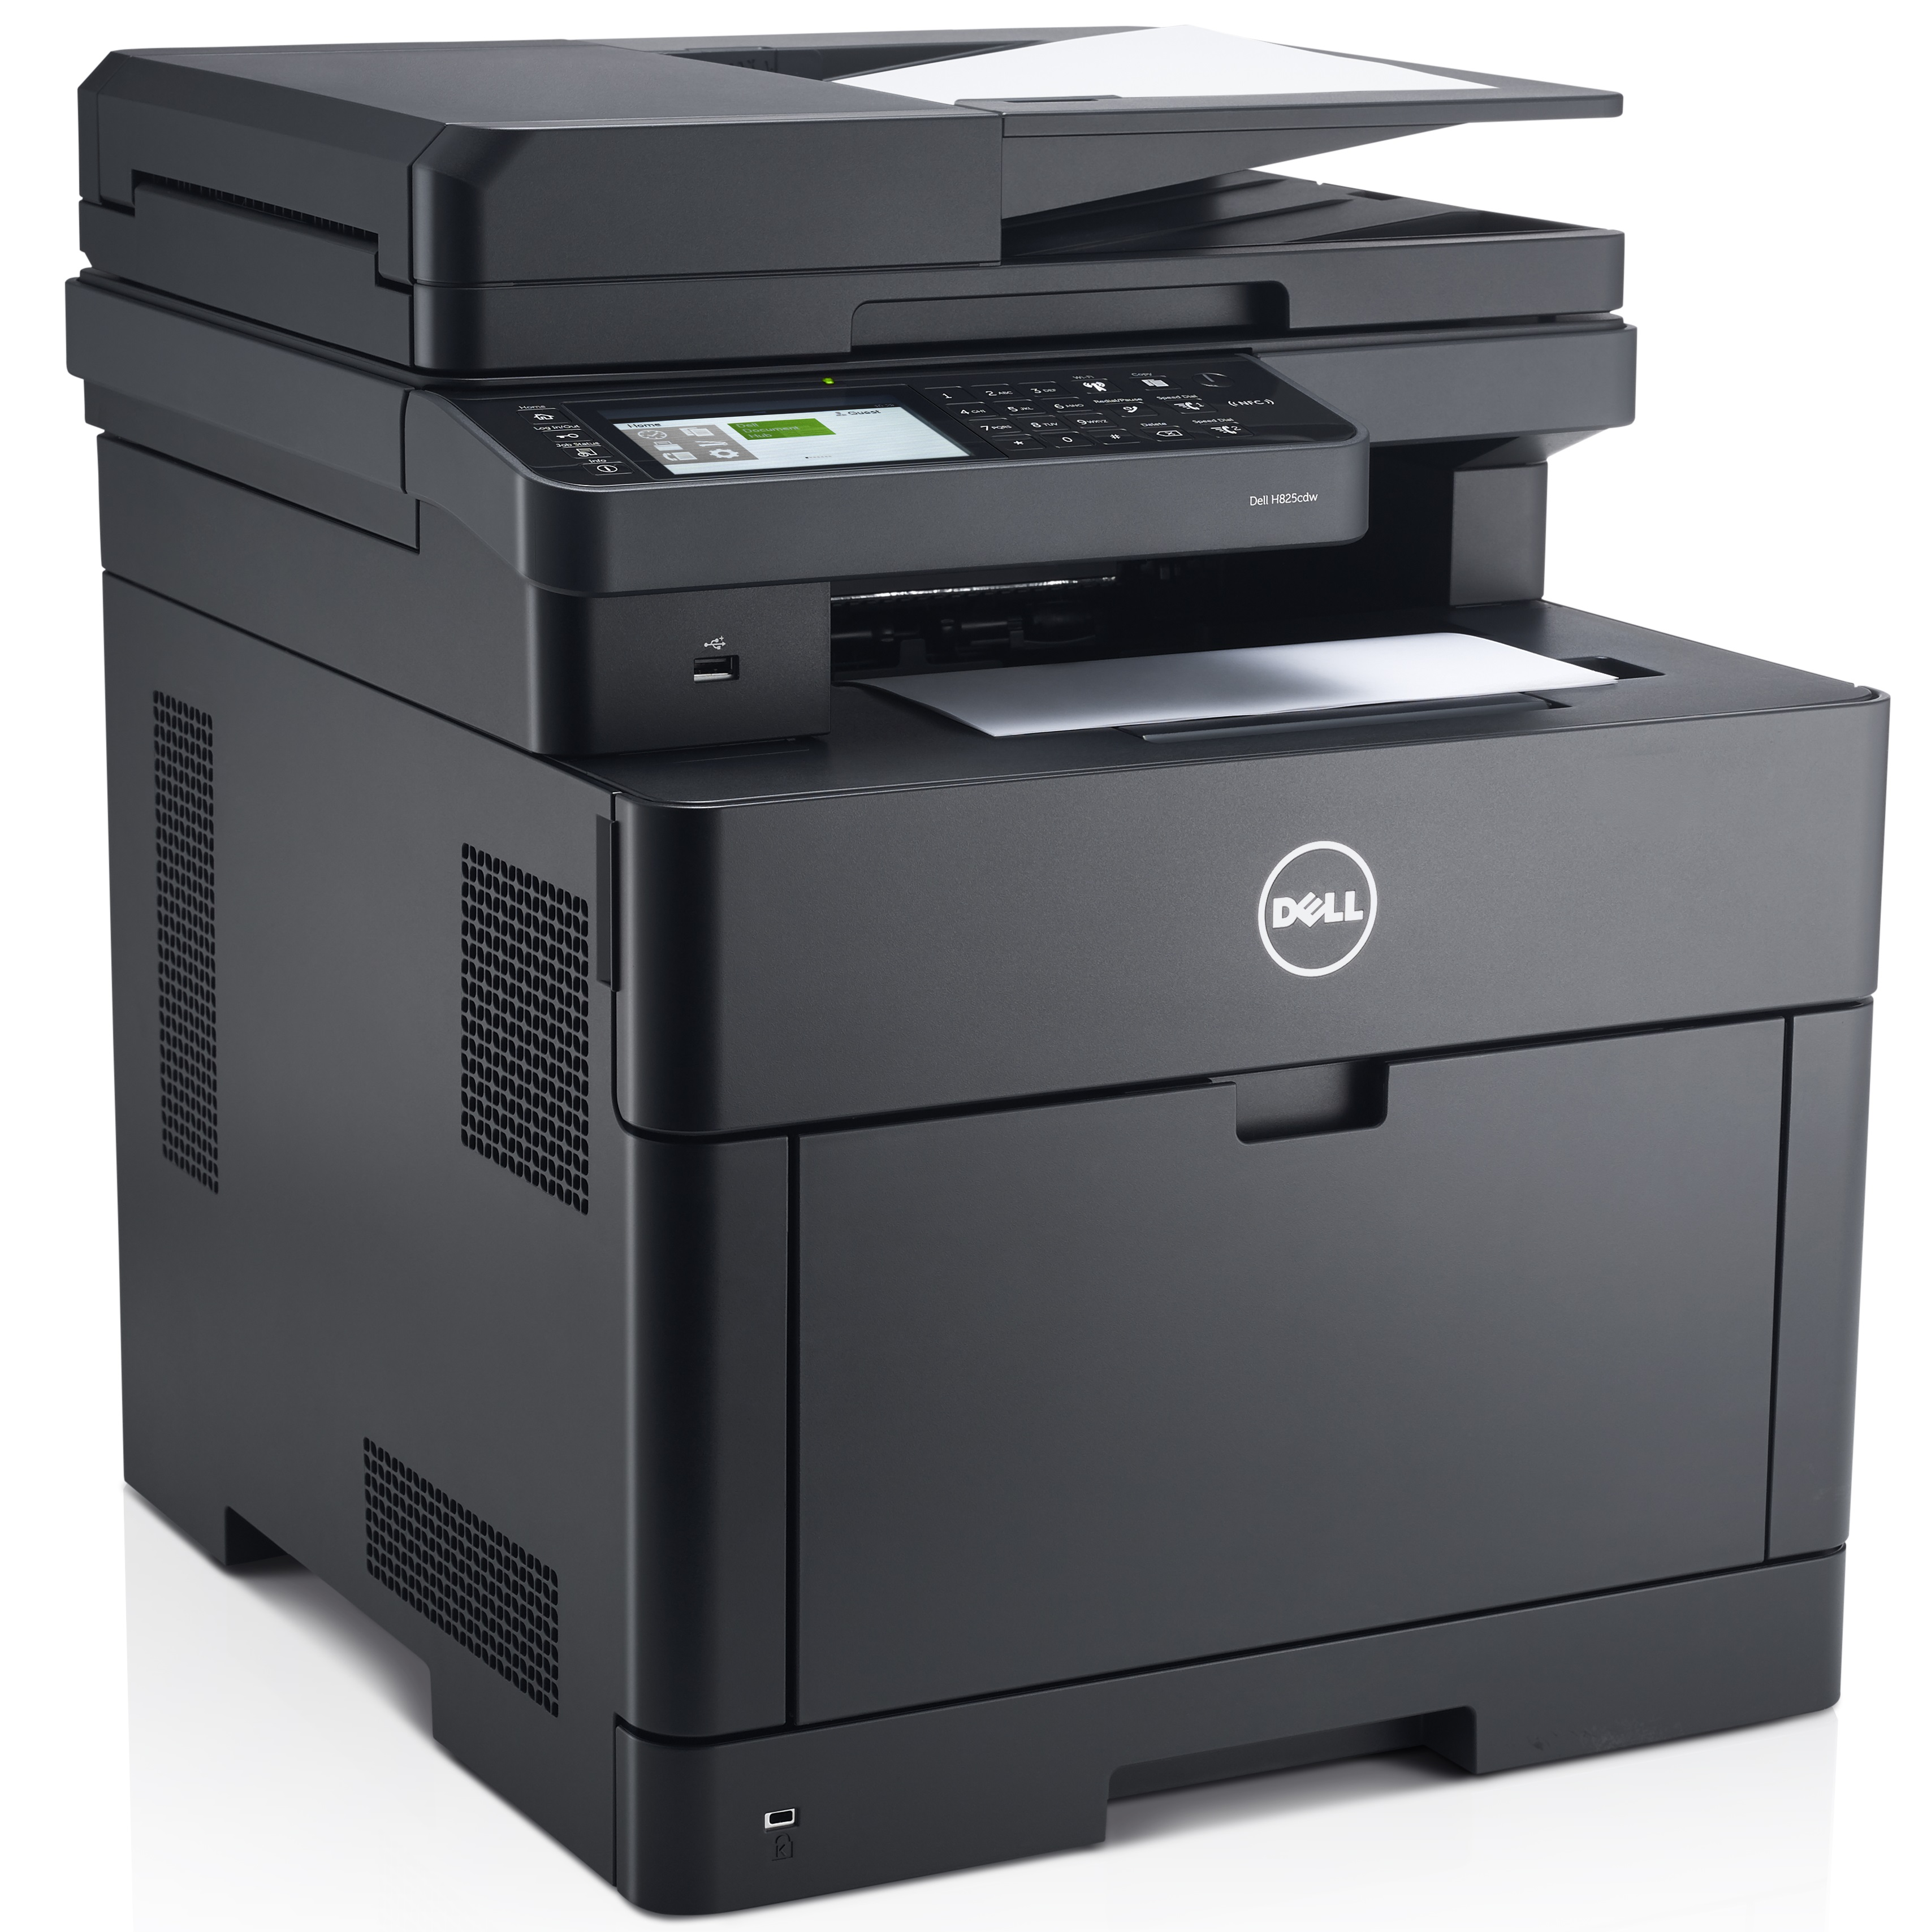 Dell H825cdw (Goshawk Cloud) multi-function printer, scanner, copier shown with paper sheets in the printer and copier trays.